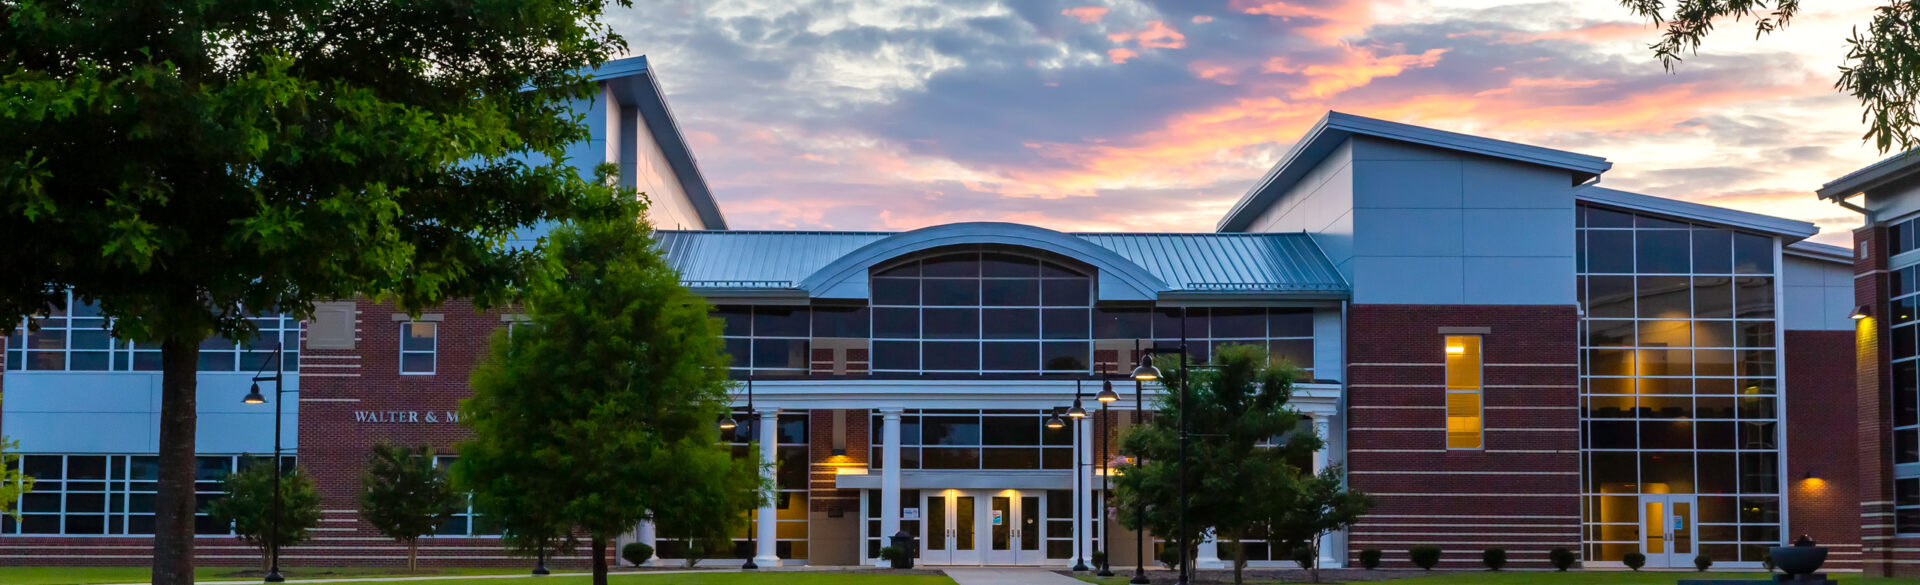 Walter and Marie Williams Building at dusk.